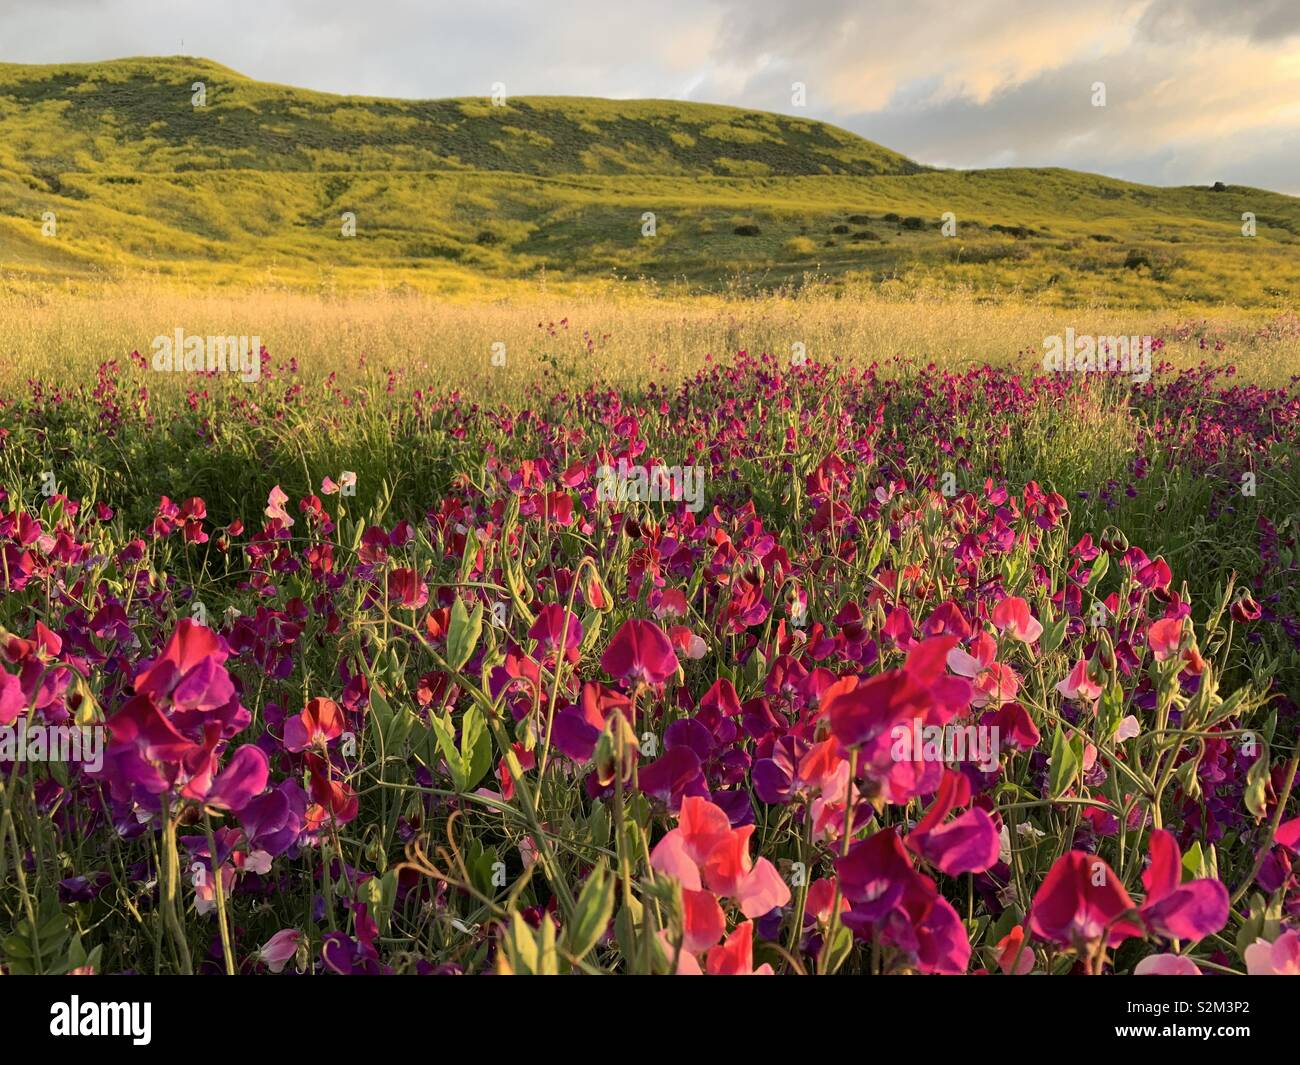 Wildflowers growing in a field in San Juan Capistrano, California. These flowers are part of the super bloom of spring 2019. - Stock Image